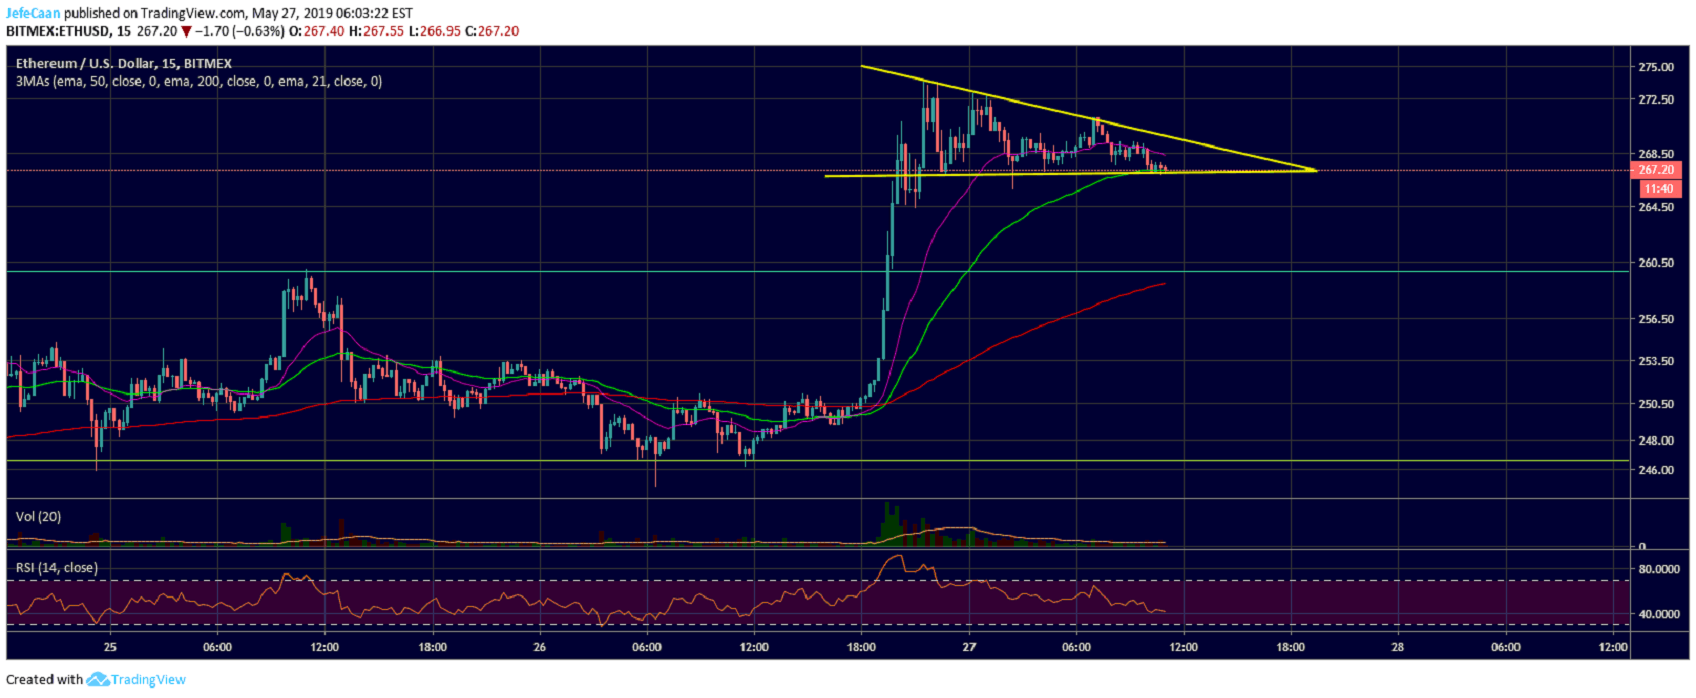 Ethereum (ETH) Expected To Fall Below $250 As Buying Frenzy Comes To An End